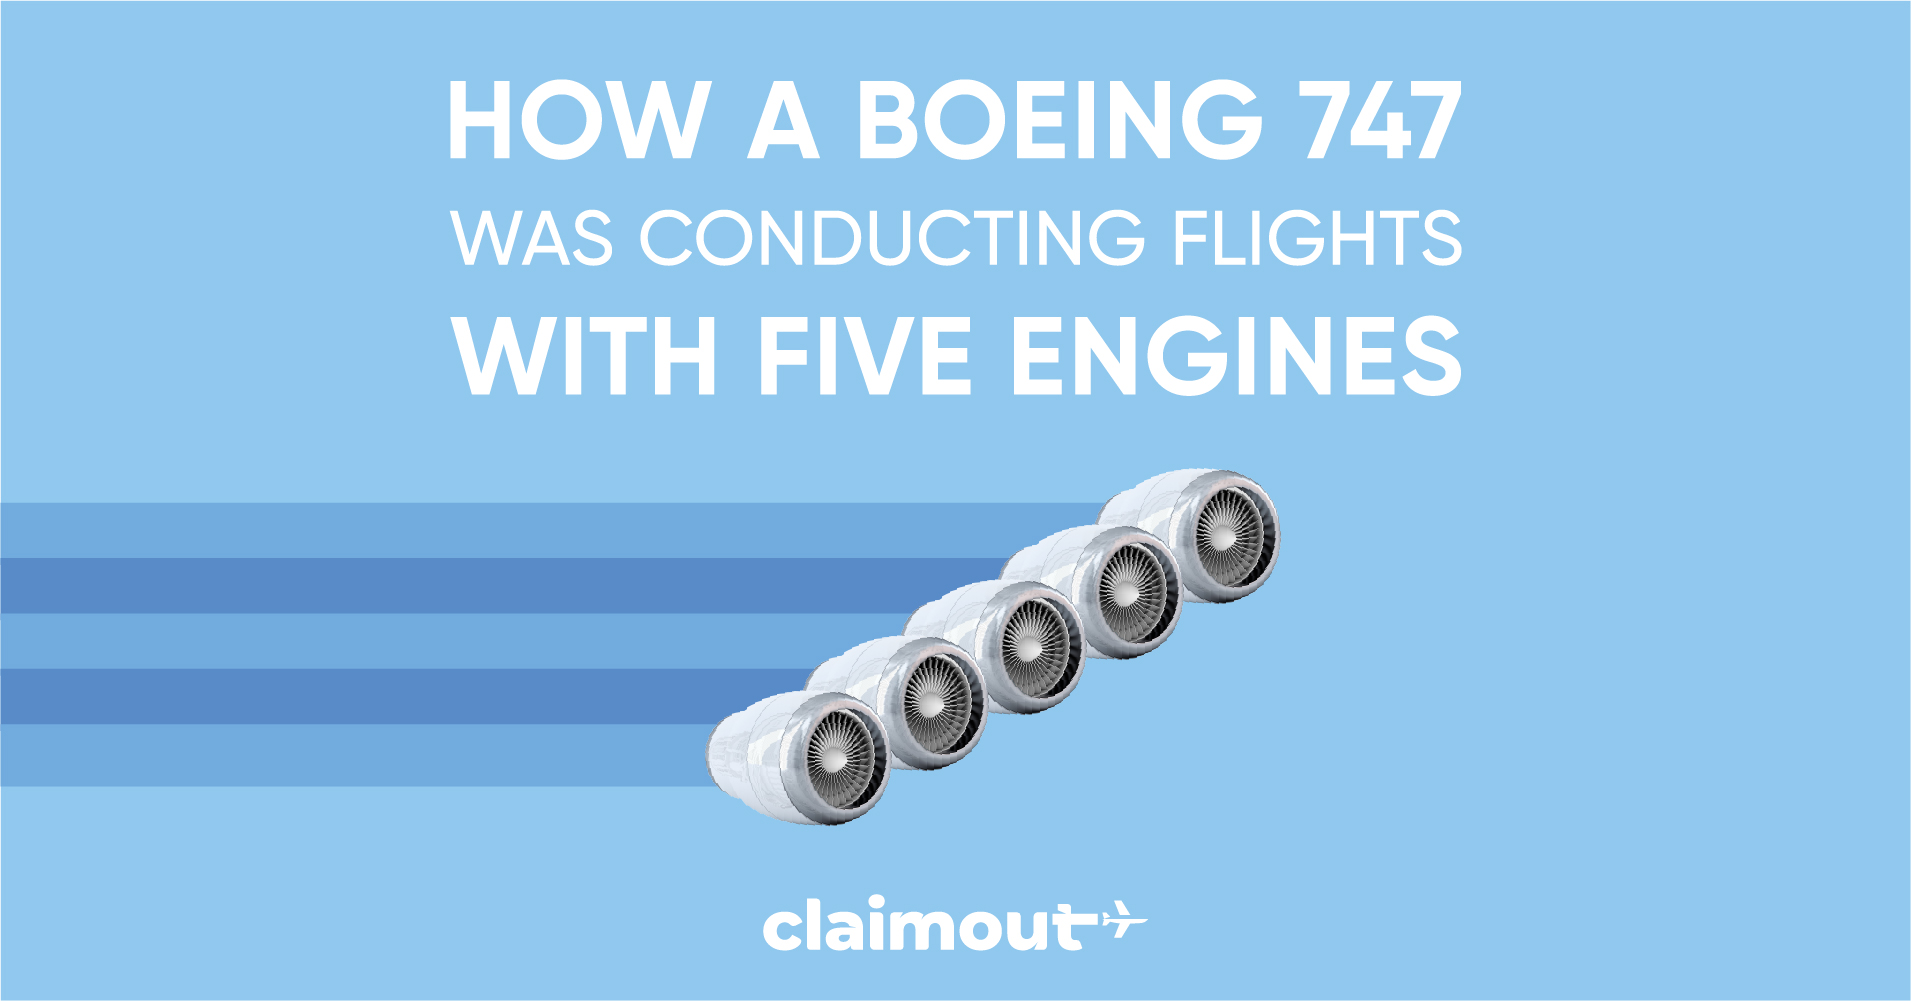 How a Boeing 747 was conducting flights with five engines